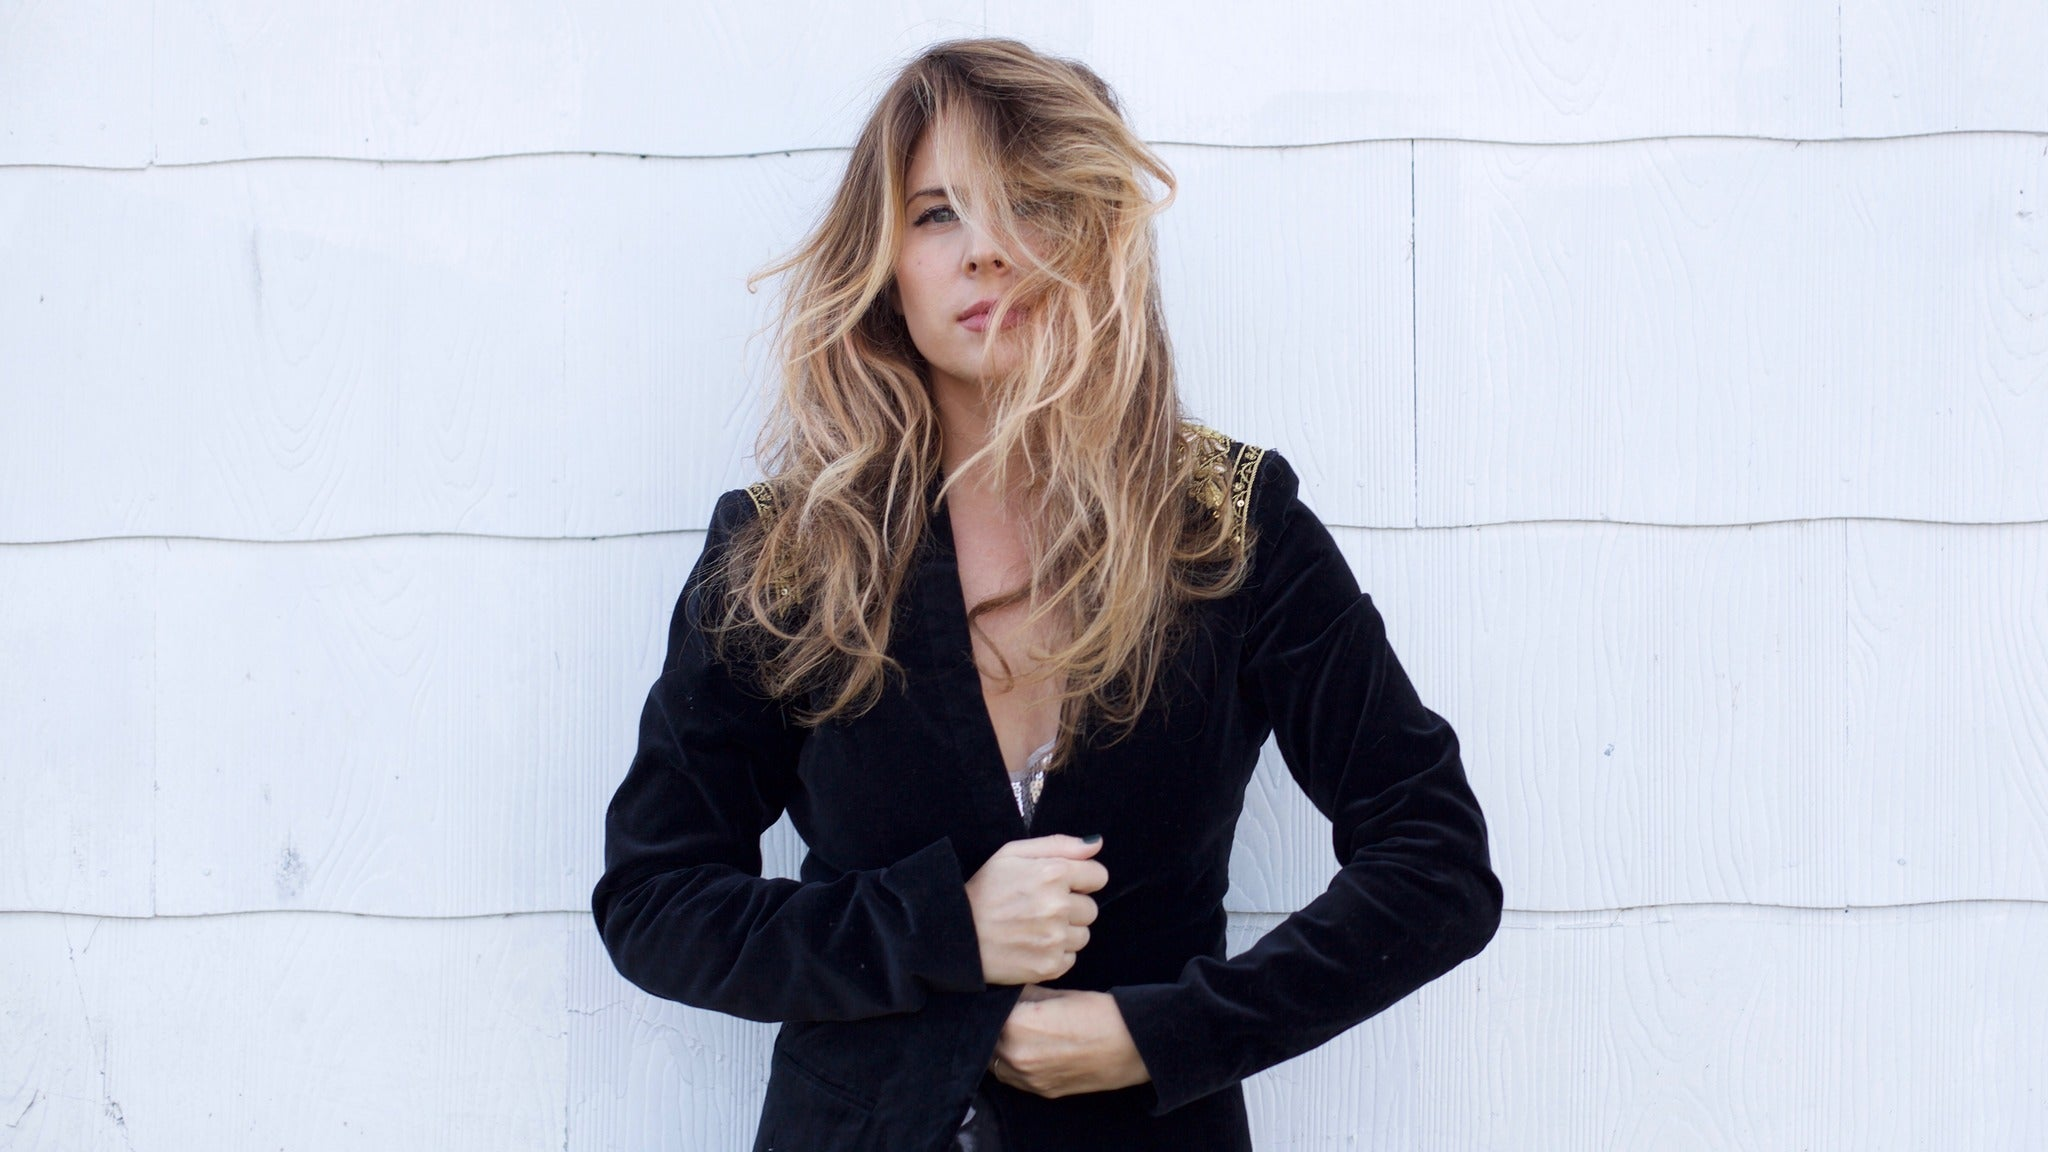 Cam Road To Happiness Tour W/ Lucie Silvas and Mickey Guyton